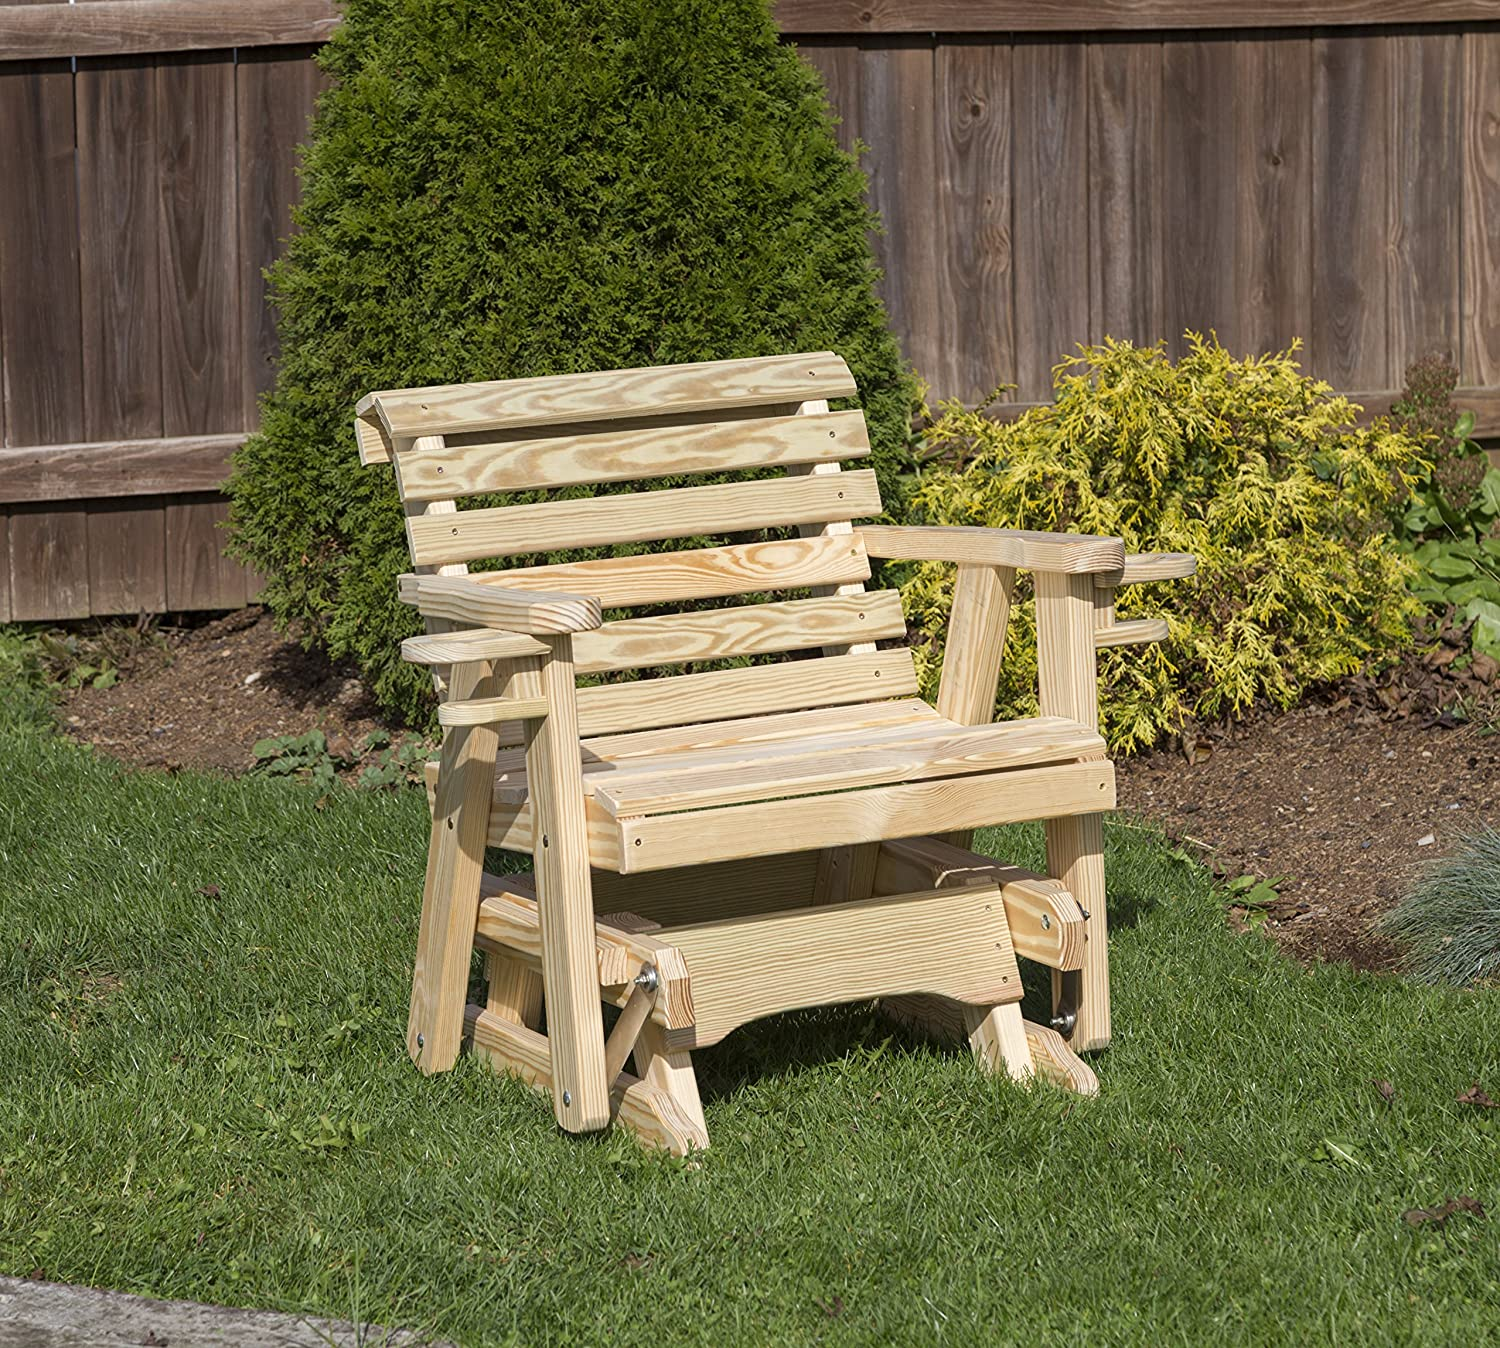 Amish Heavy Duty 600 Lb Roll Back Pressure Treated Porch Patio Garden Lawn Outdoor GLIDER CHAIR with cup holders-2 Feet-GOLD-Made in USA